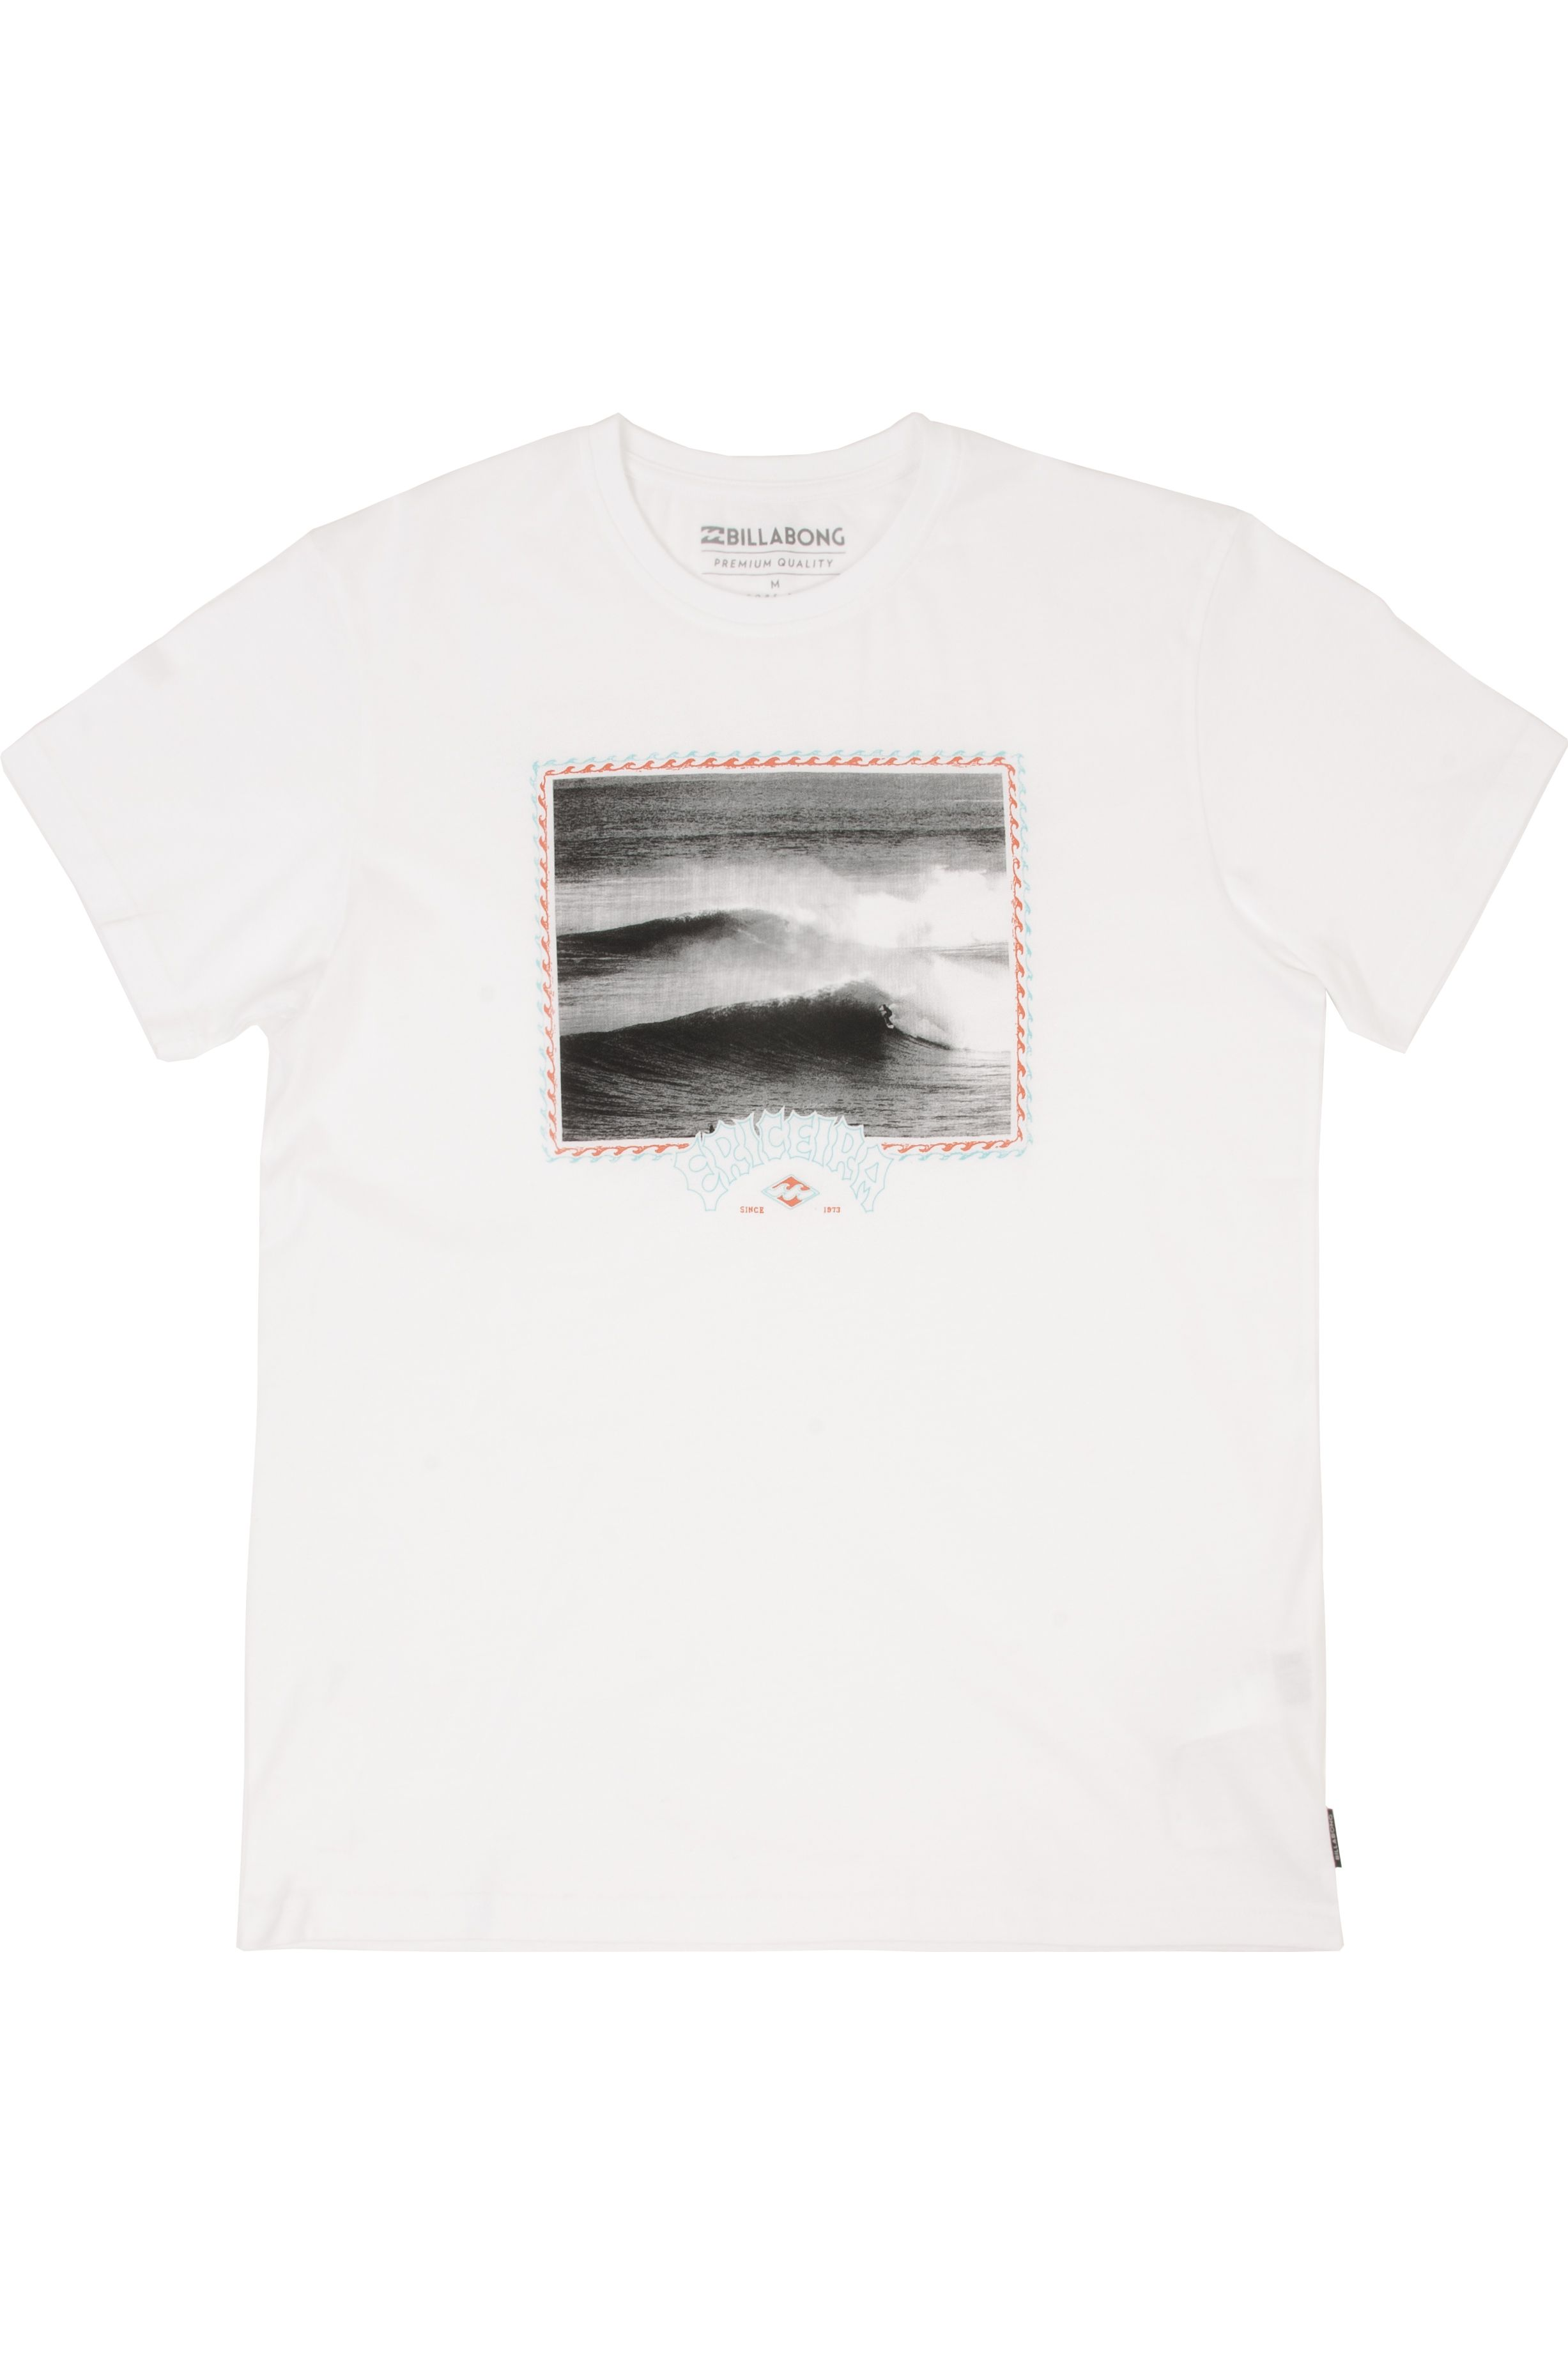 T-Shirt Billabong ERICEIRA WAVE DESTINATION White